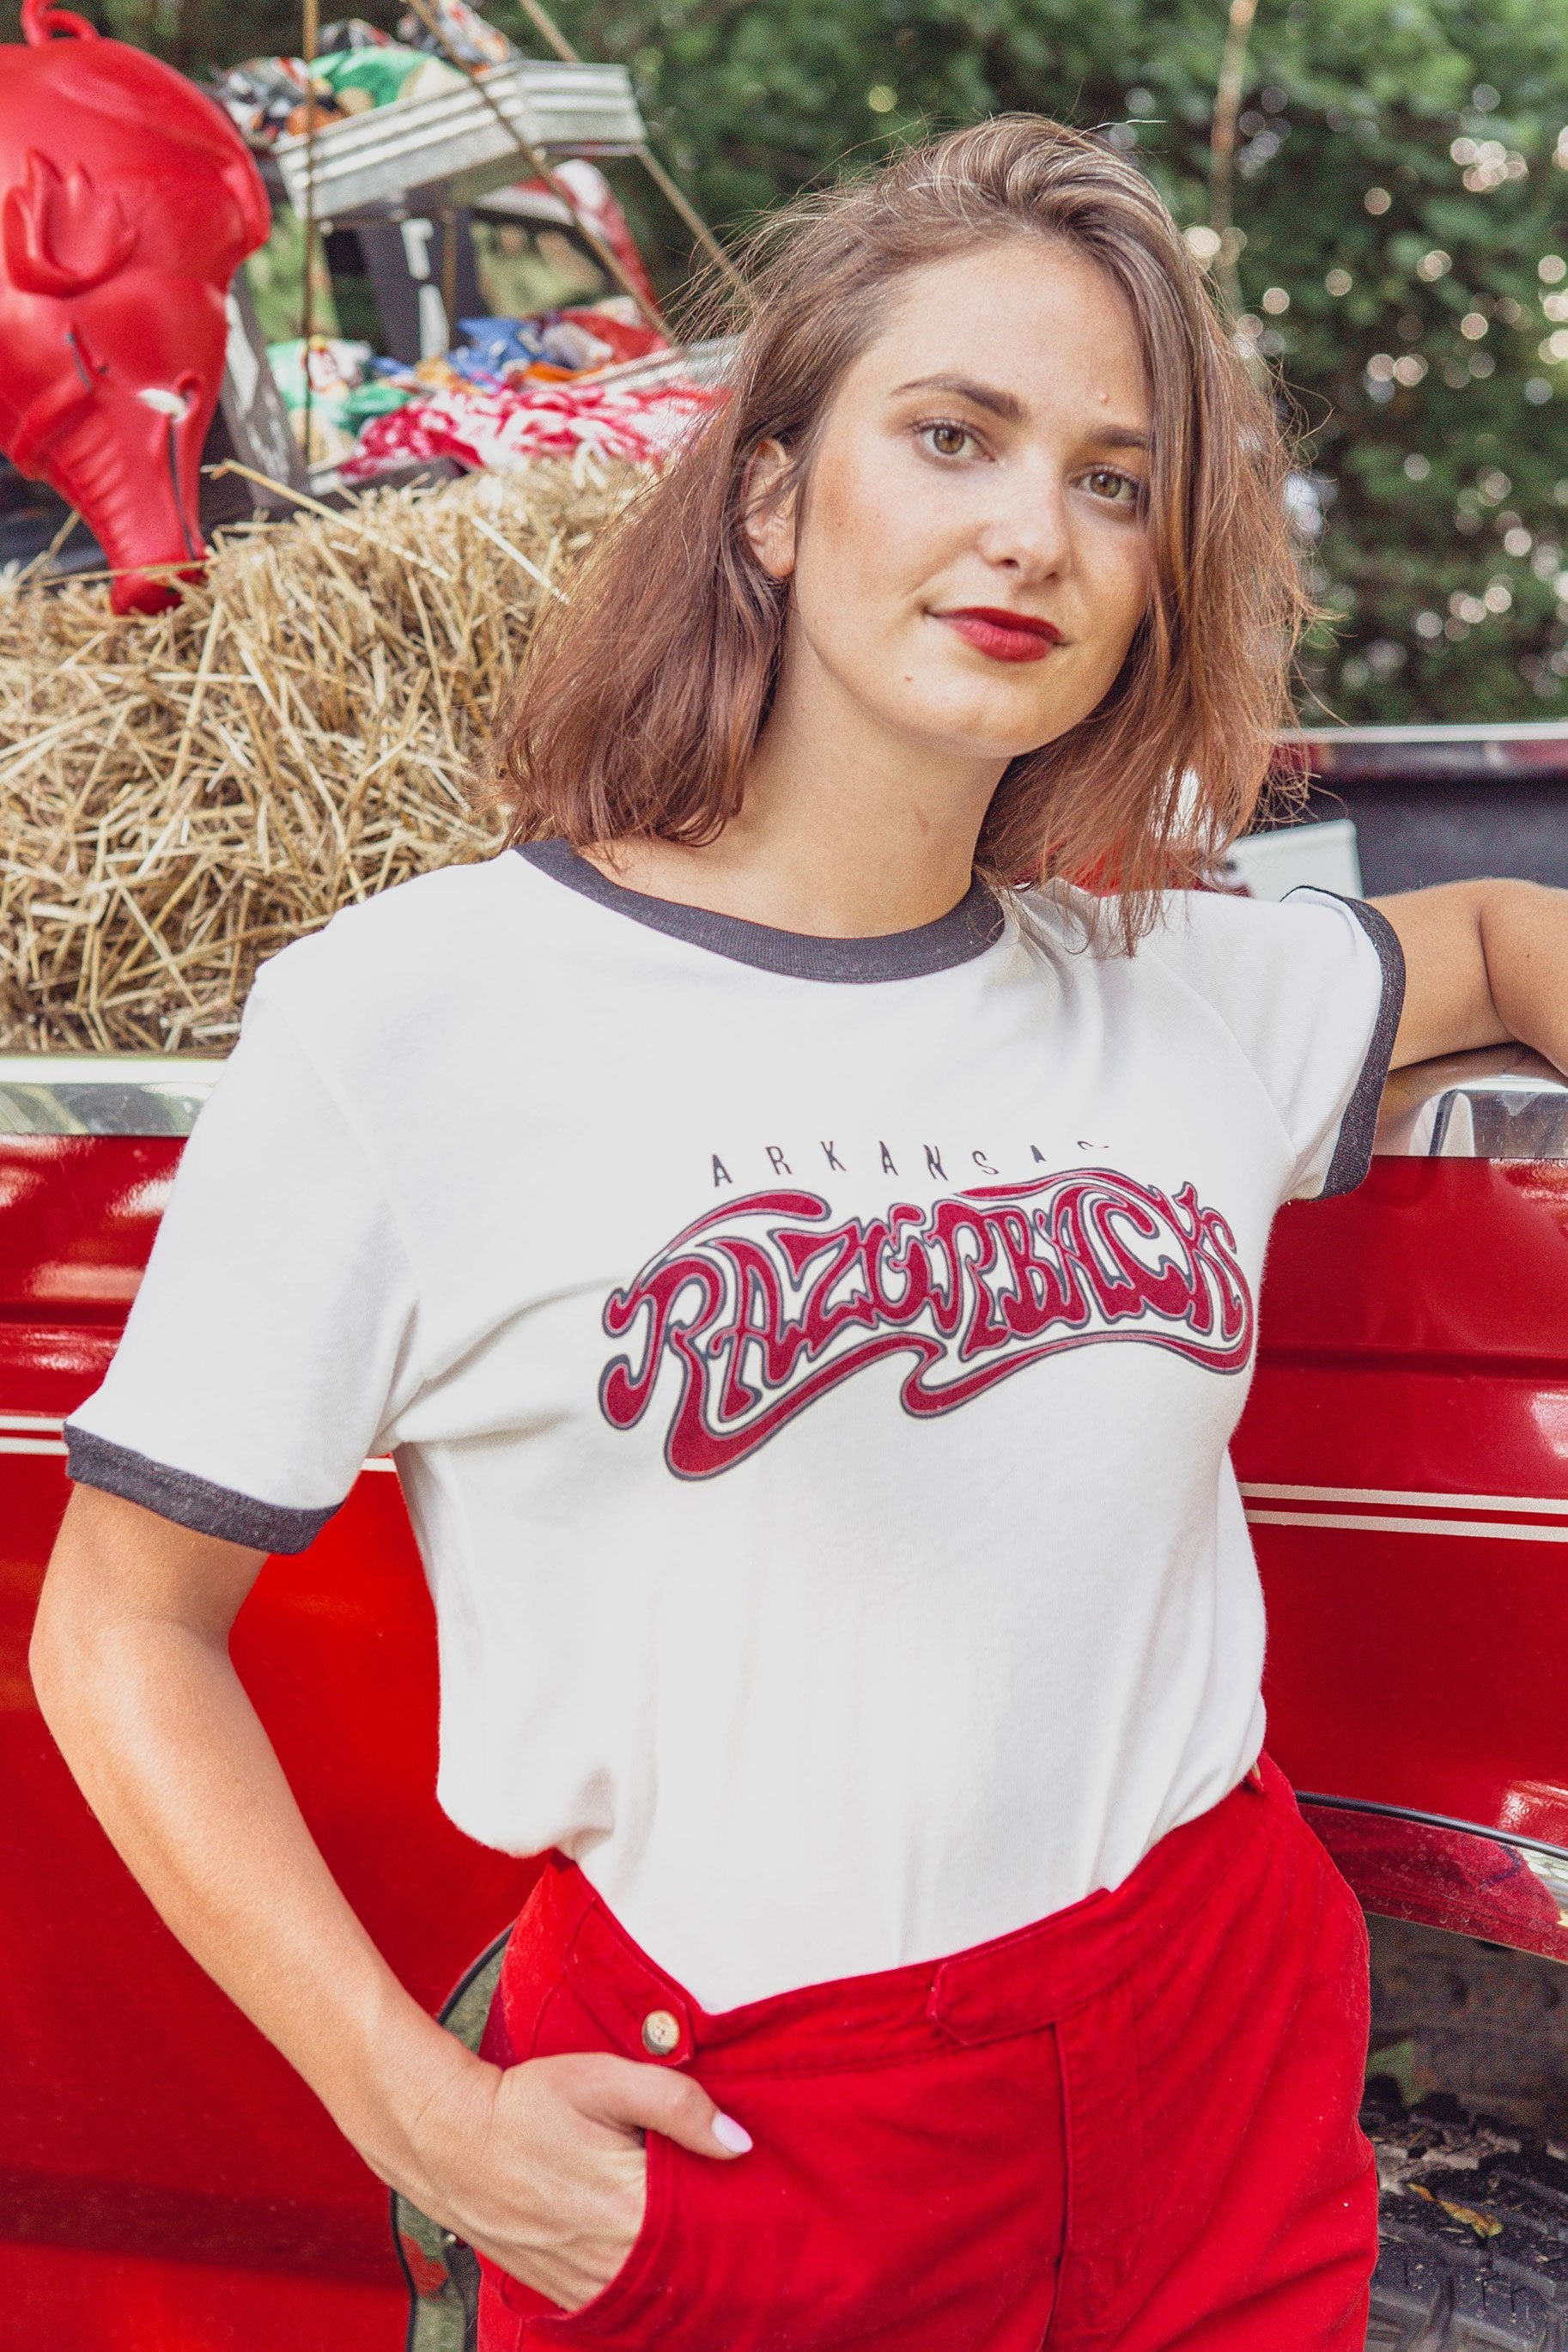 Dream On Razorback Ringer T-Shirt